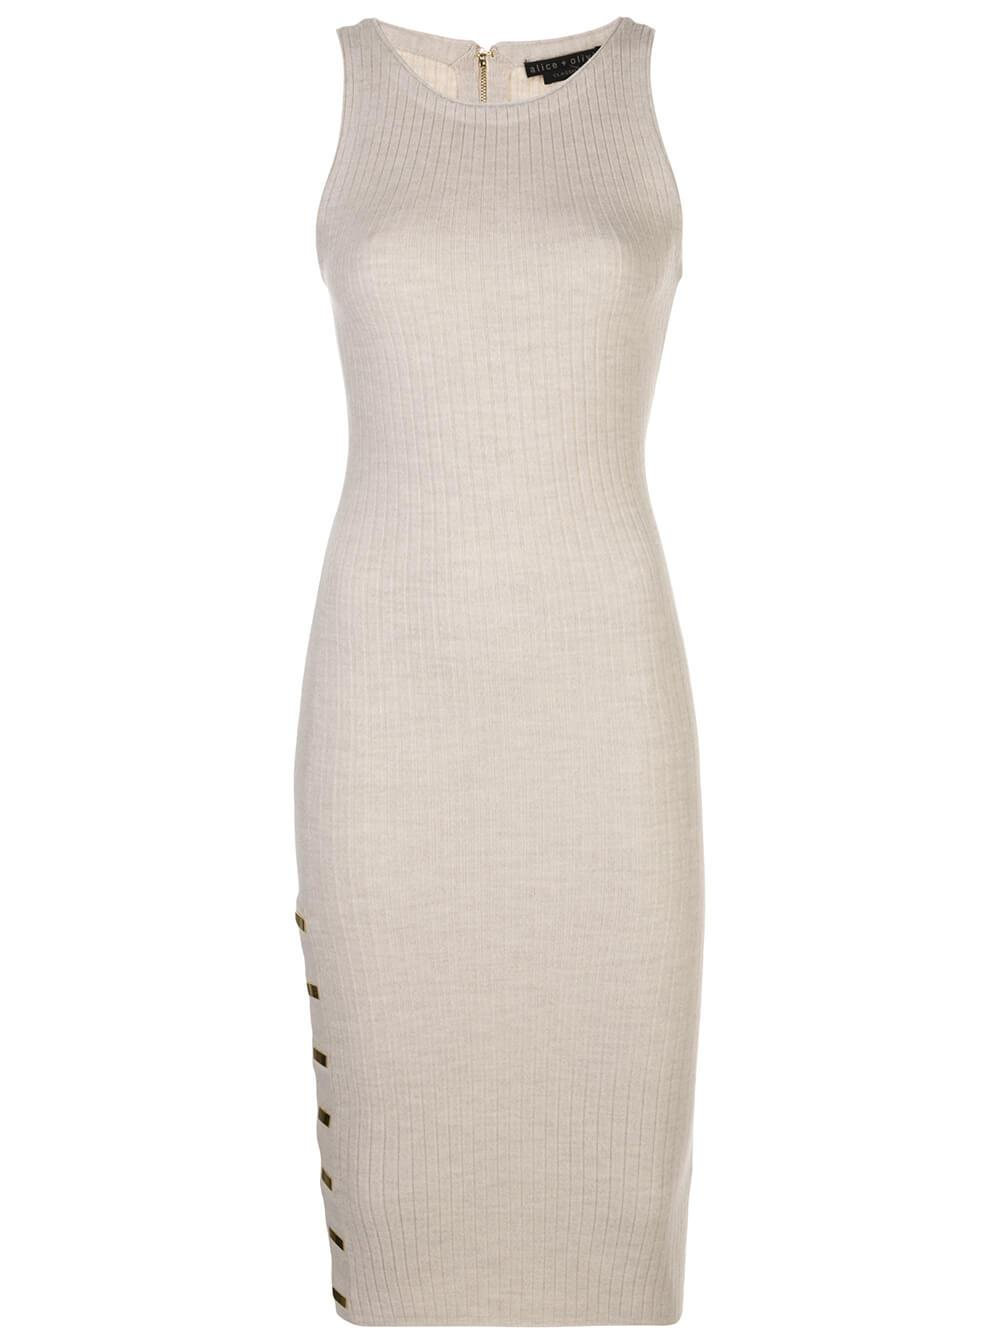 Jenner Crew Neck Slim Knit Dress